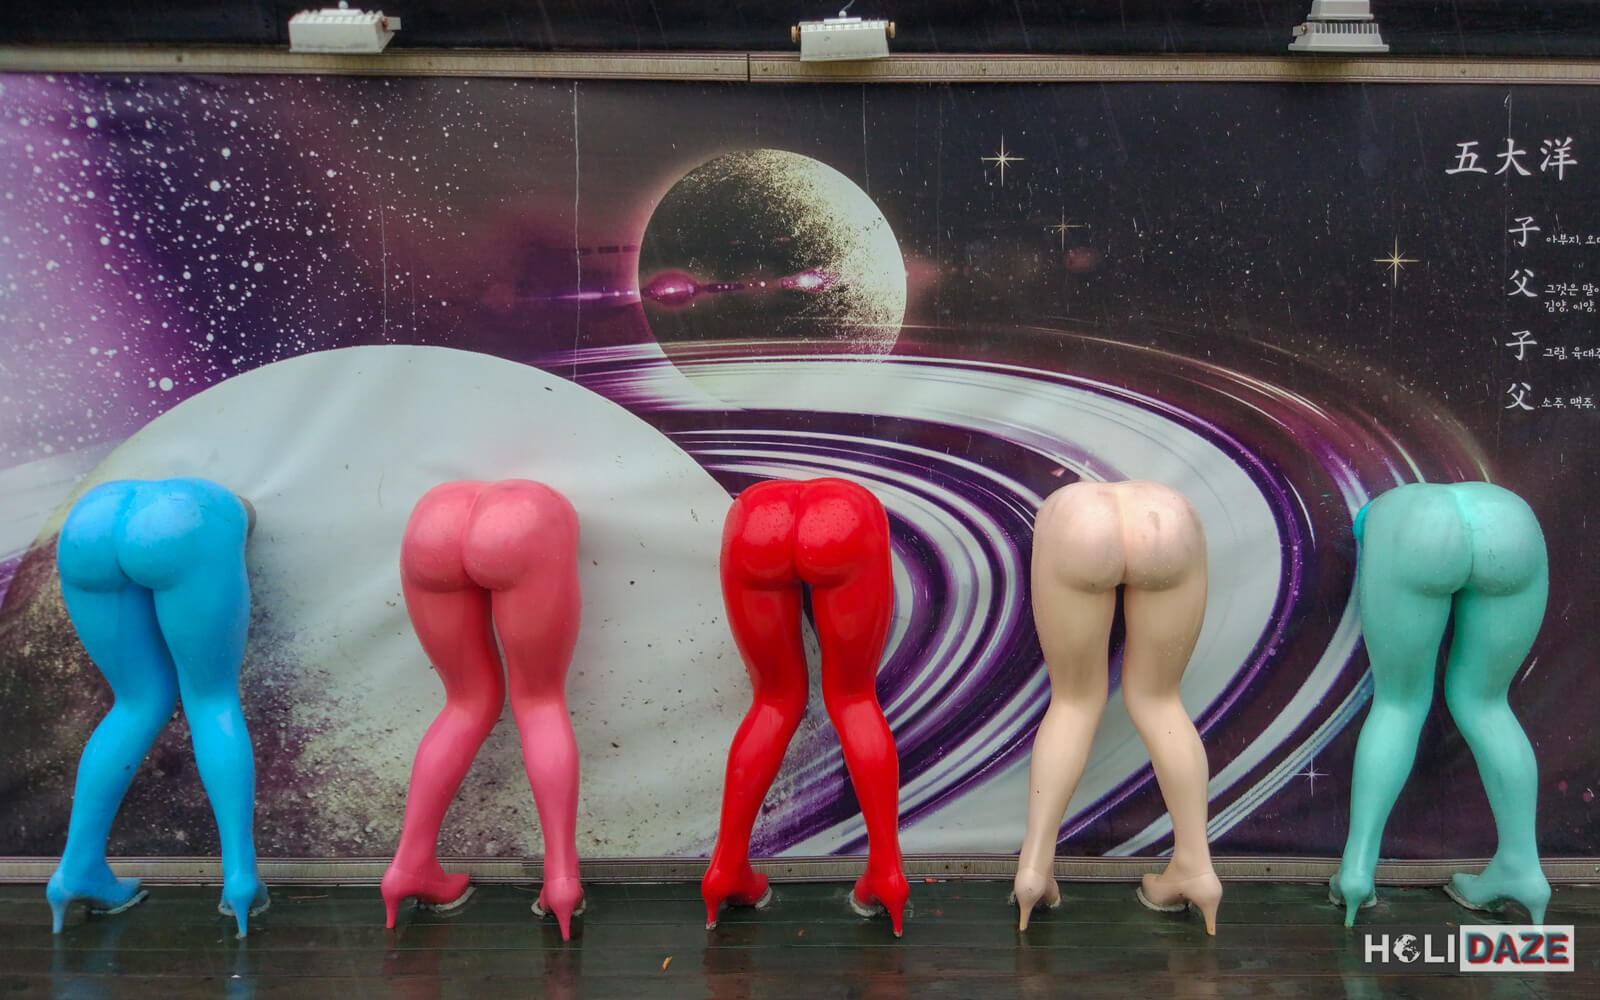 Screw the Seoul Sex Museum -- visit the less known and off the beaten path one in Gyeongju, Korea